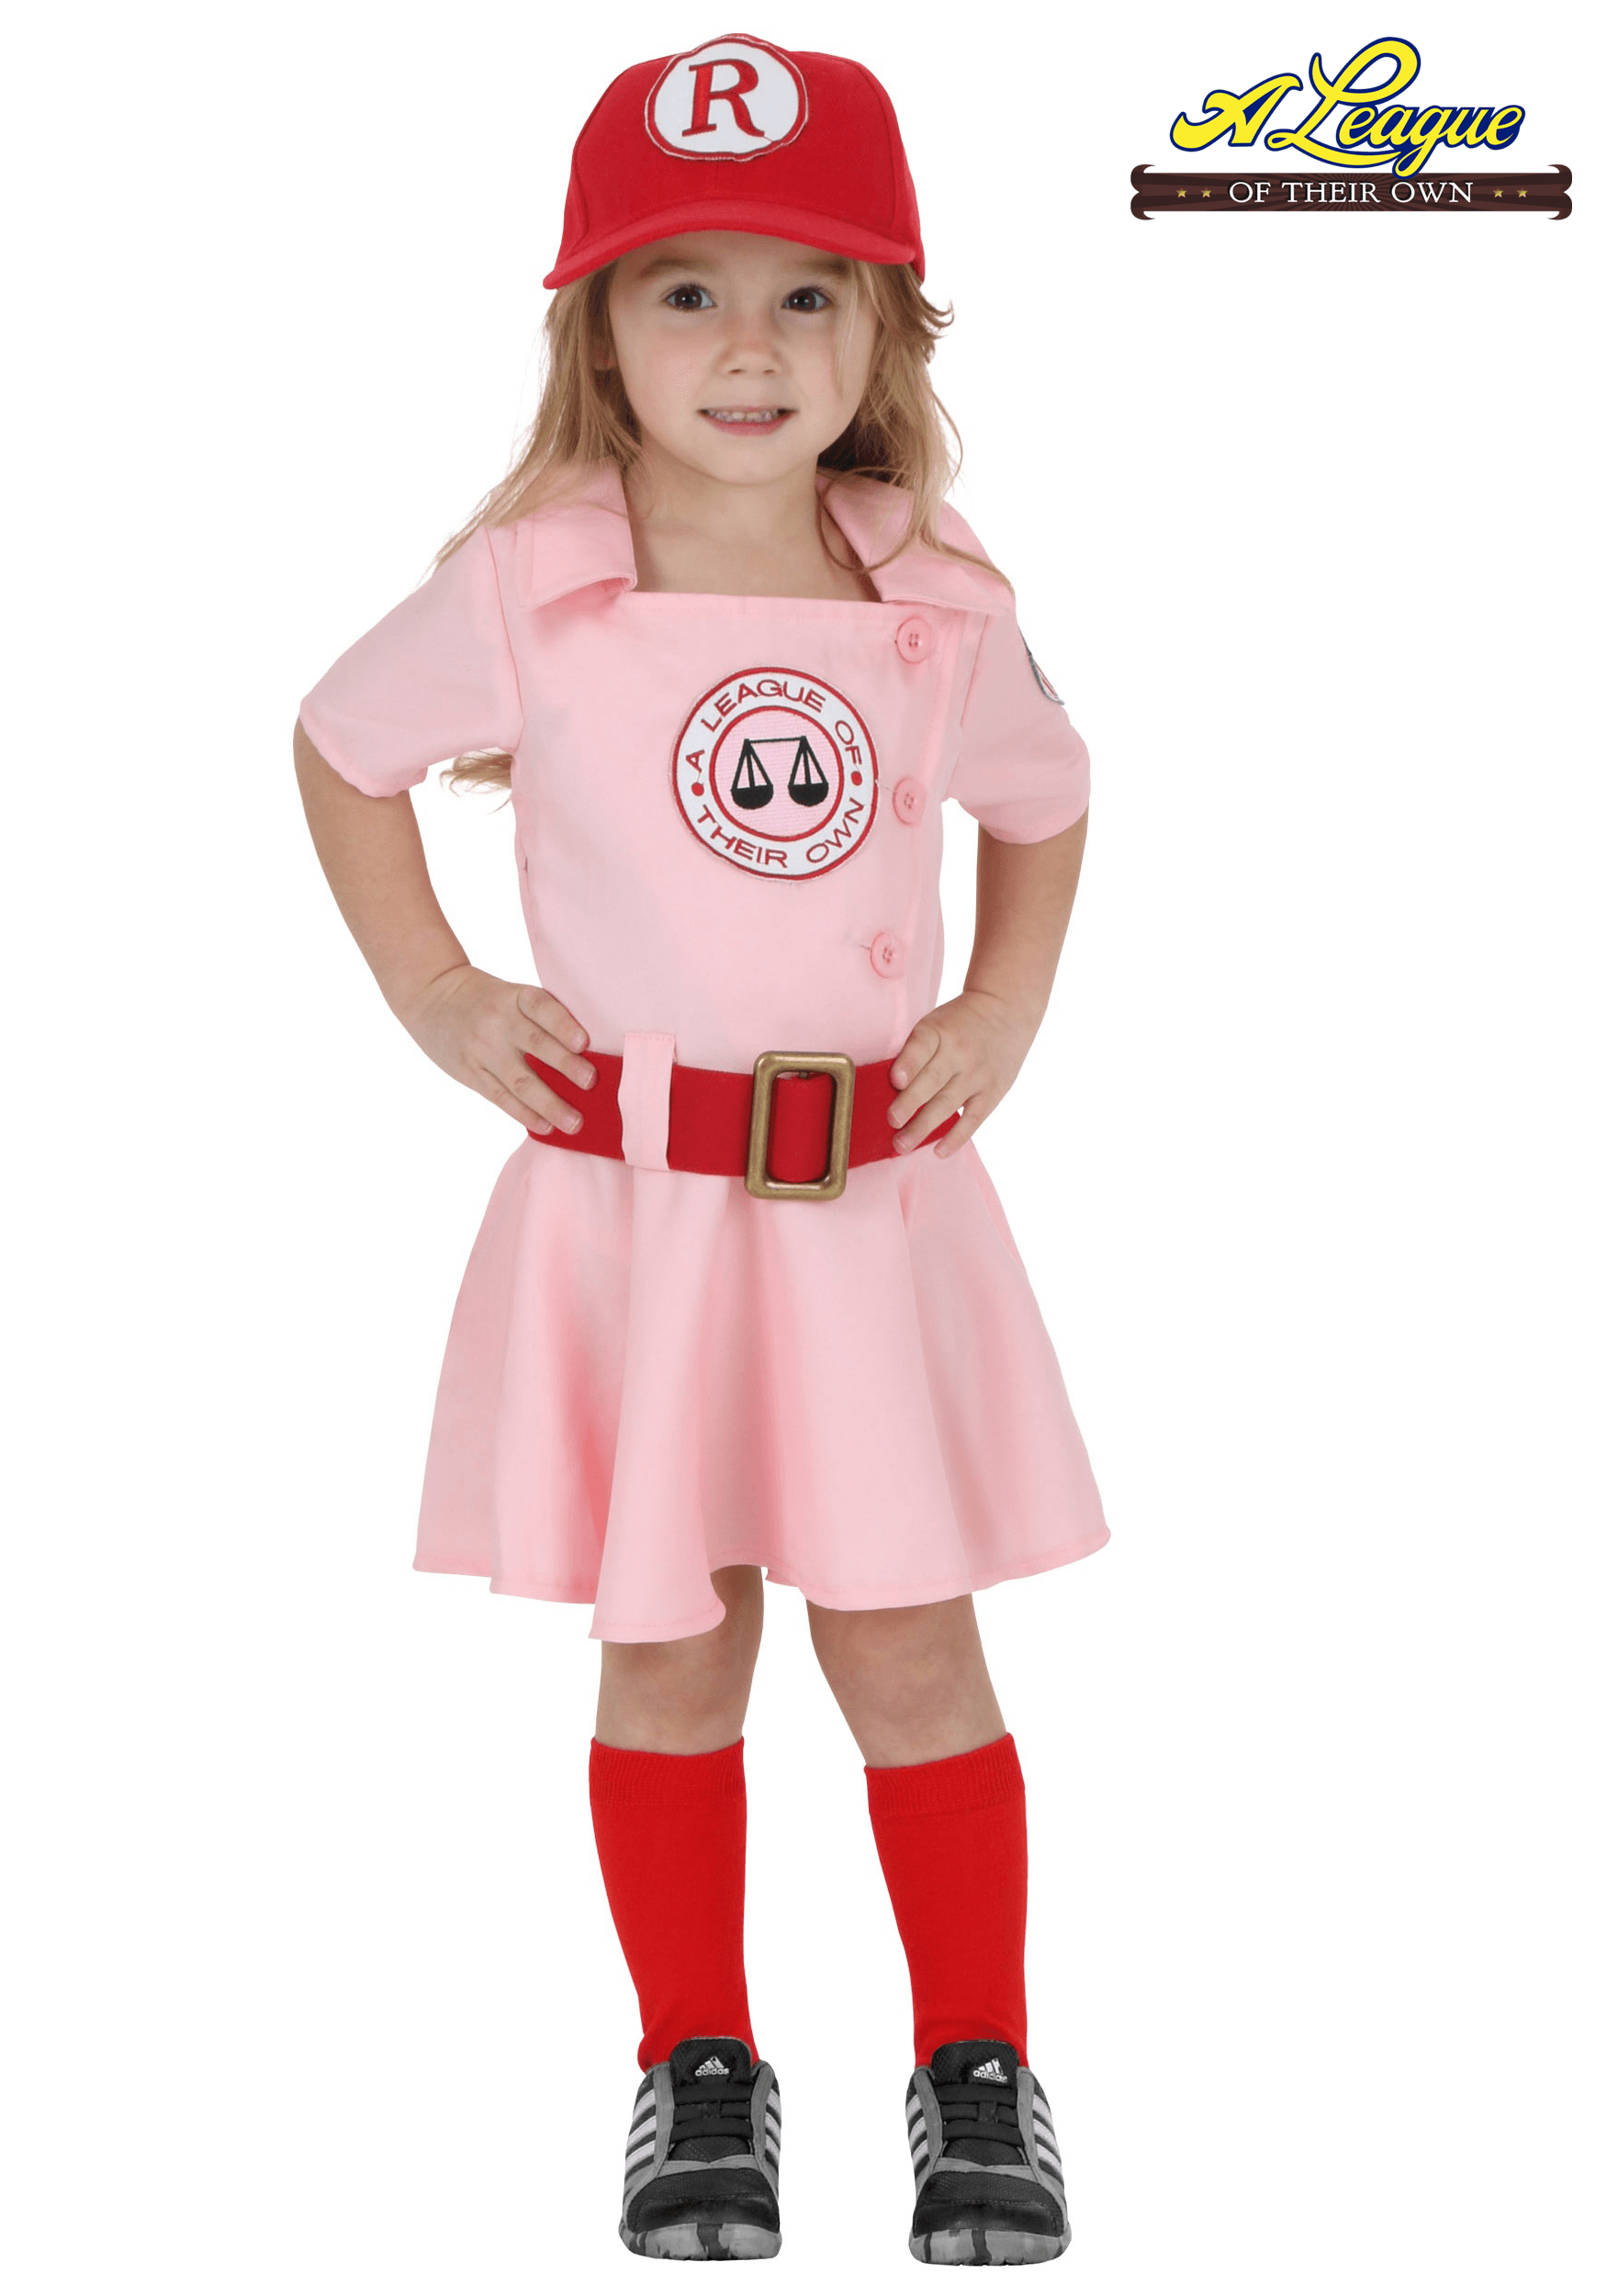 Toddler A League of Their Own Dottie Costume - Toddler Girl PNG